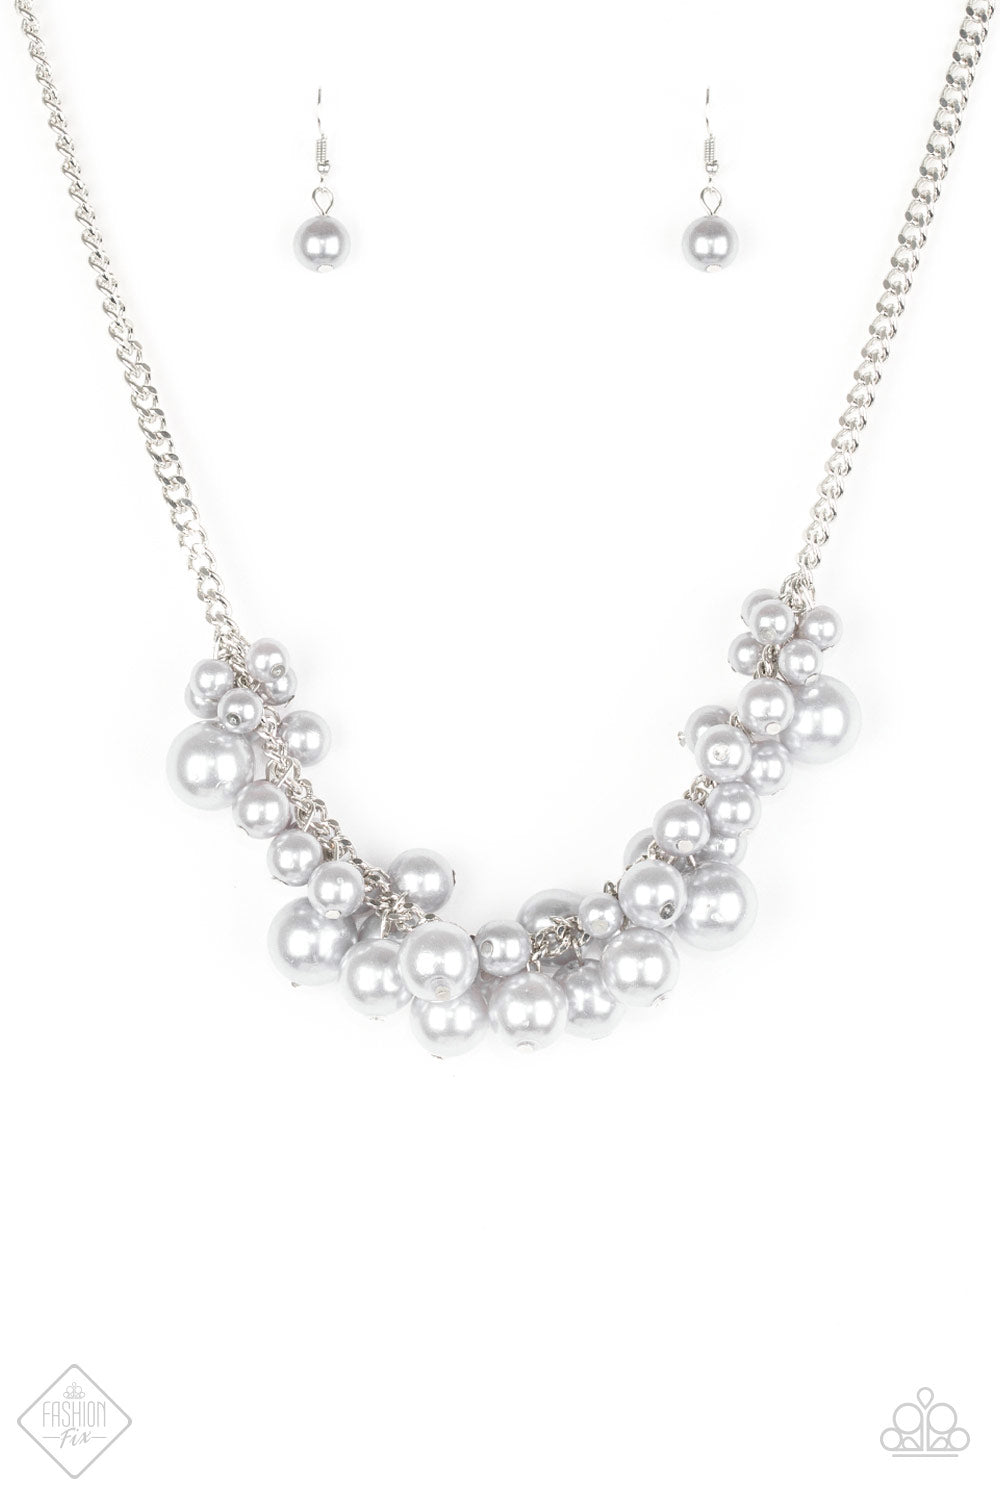 Glam Queen - Paparazzi Silver Necklace - Be Adored Jewelry